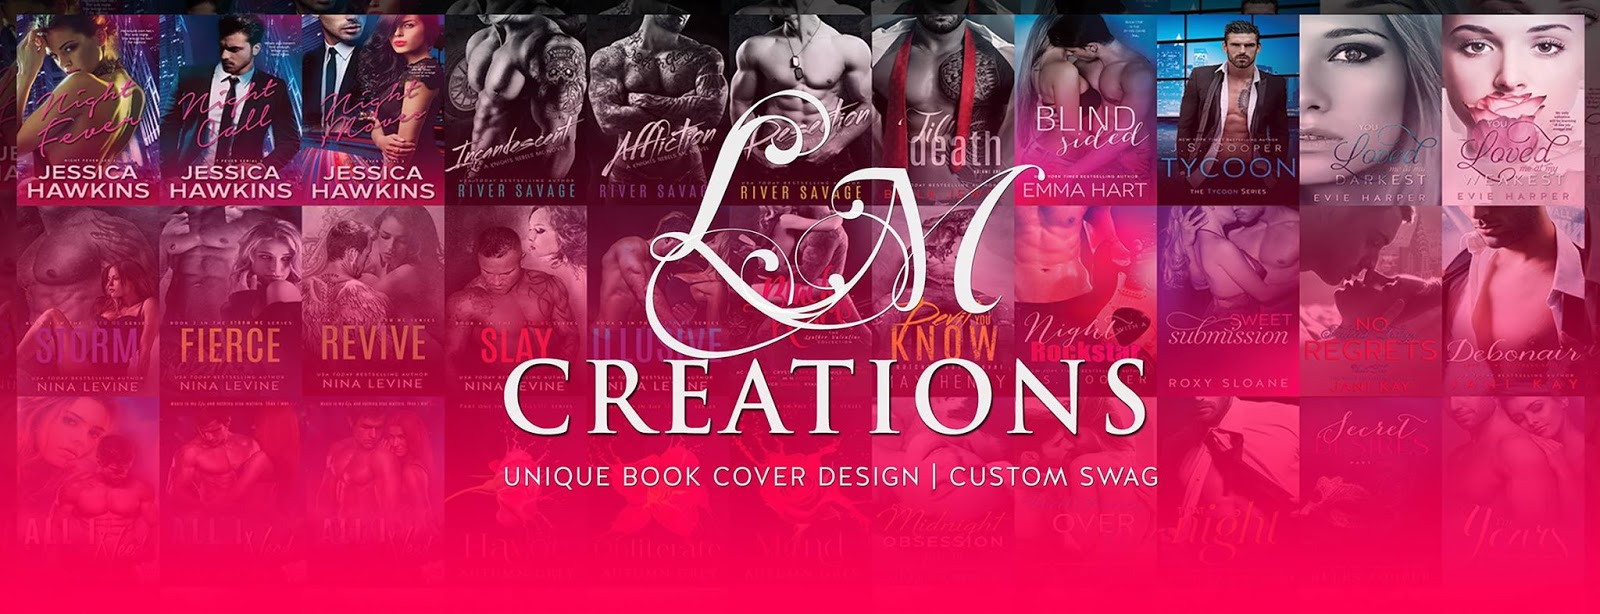 https://www.facebook.com/LMbookCreations